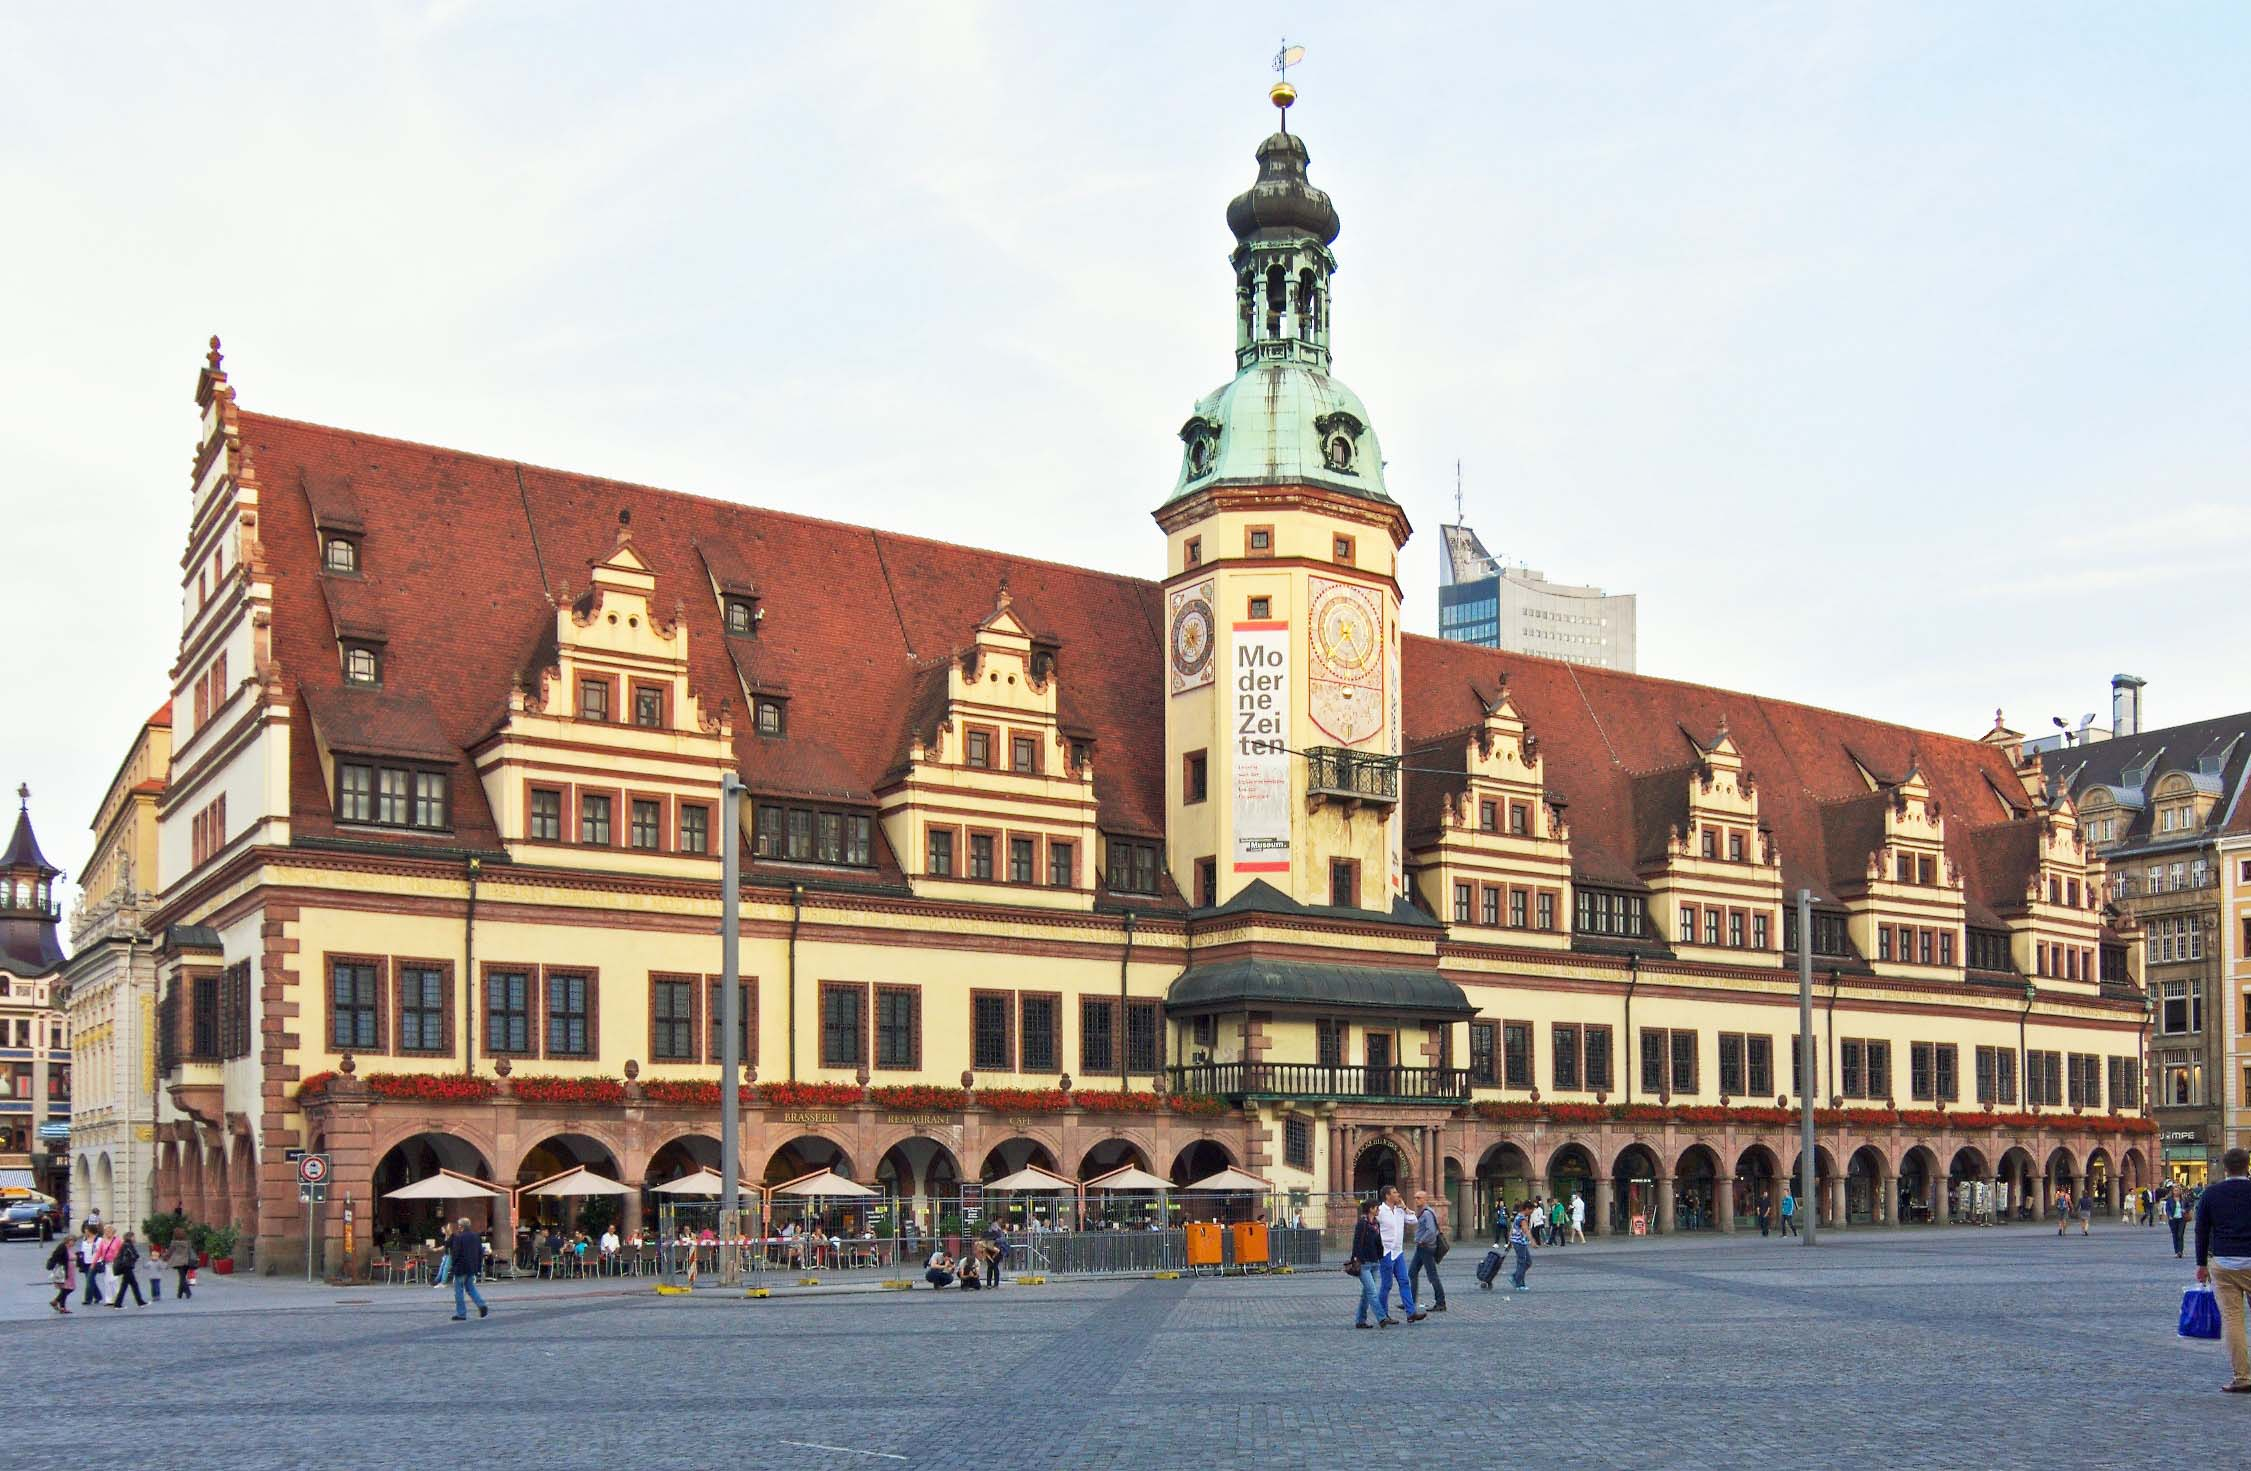 The Altes Rathaus (Old Town Hall) today, which houses the Museum of City History of Leipzig.